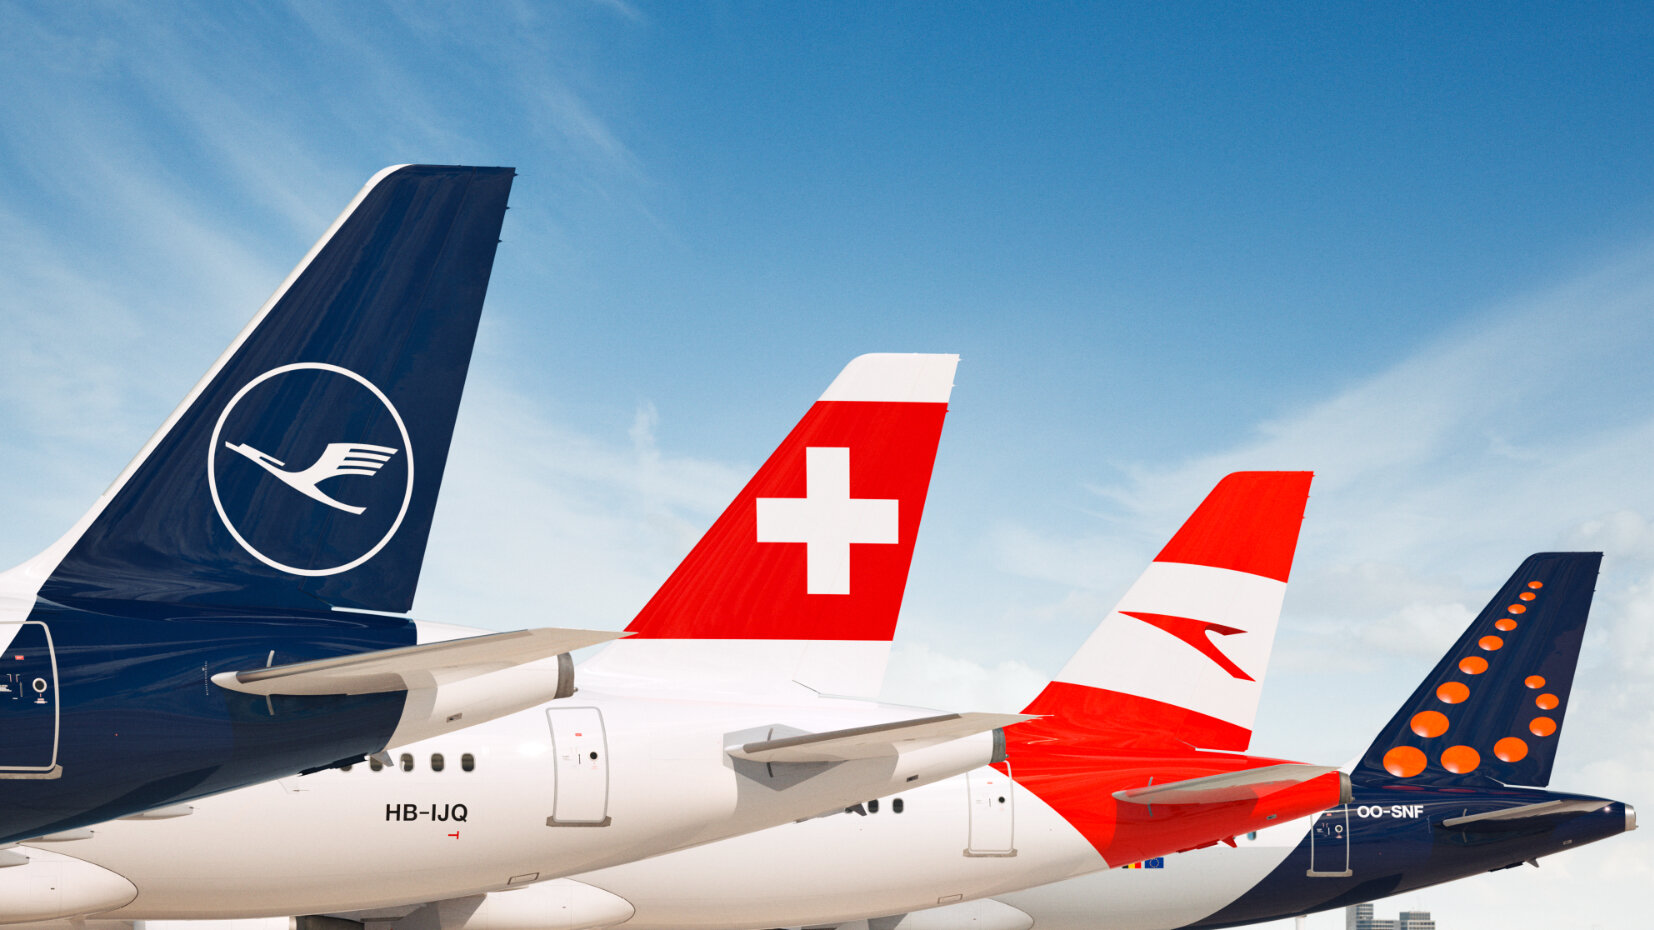 Lufthansa processes €2.6 billion in refund claims from first half of the year